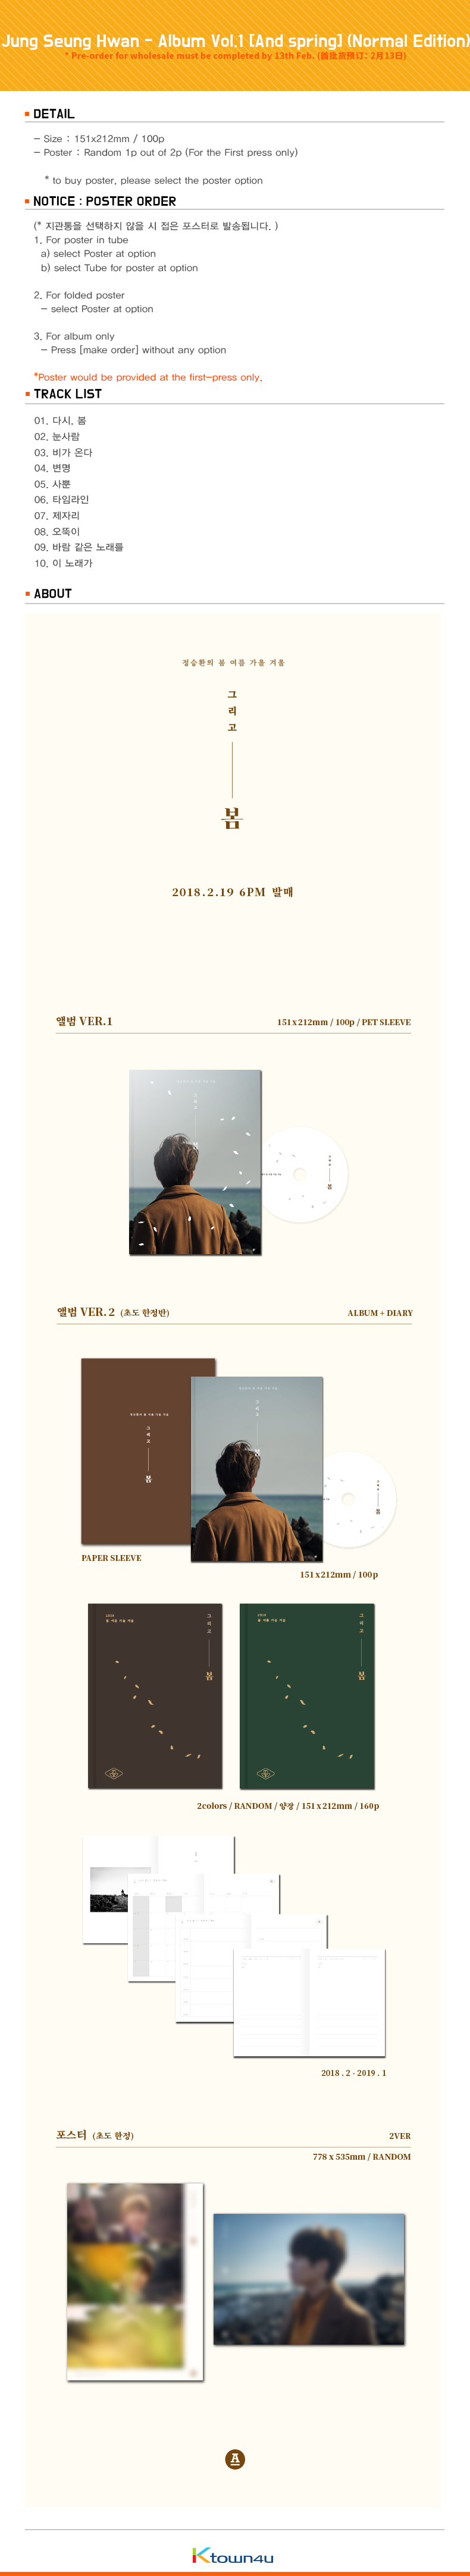 Jung Seung Hwan - Album Vol.1 [And spring] (Normal Edition)